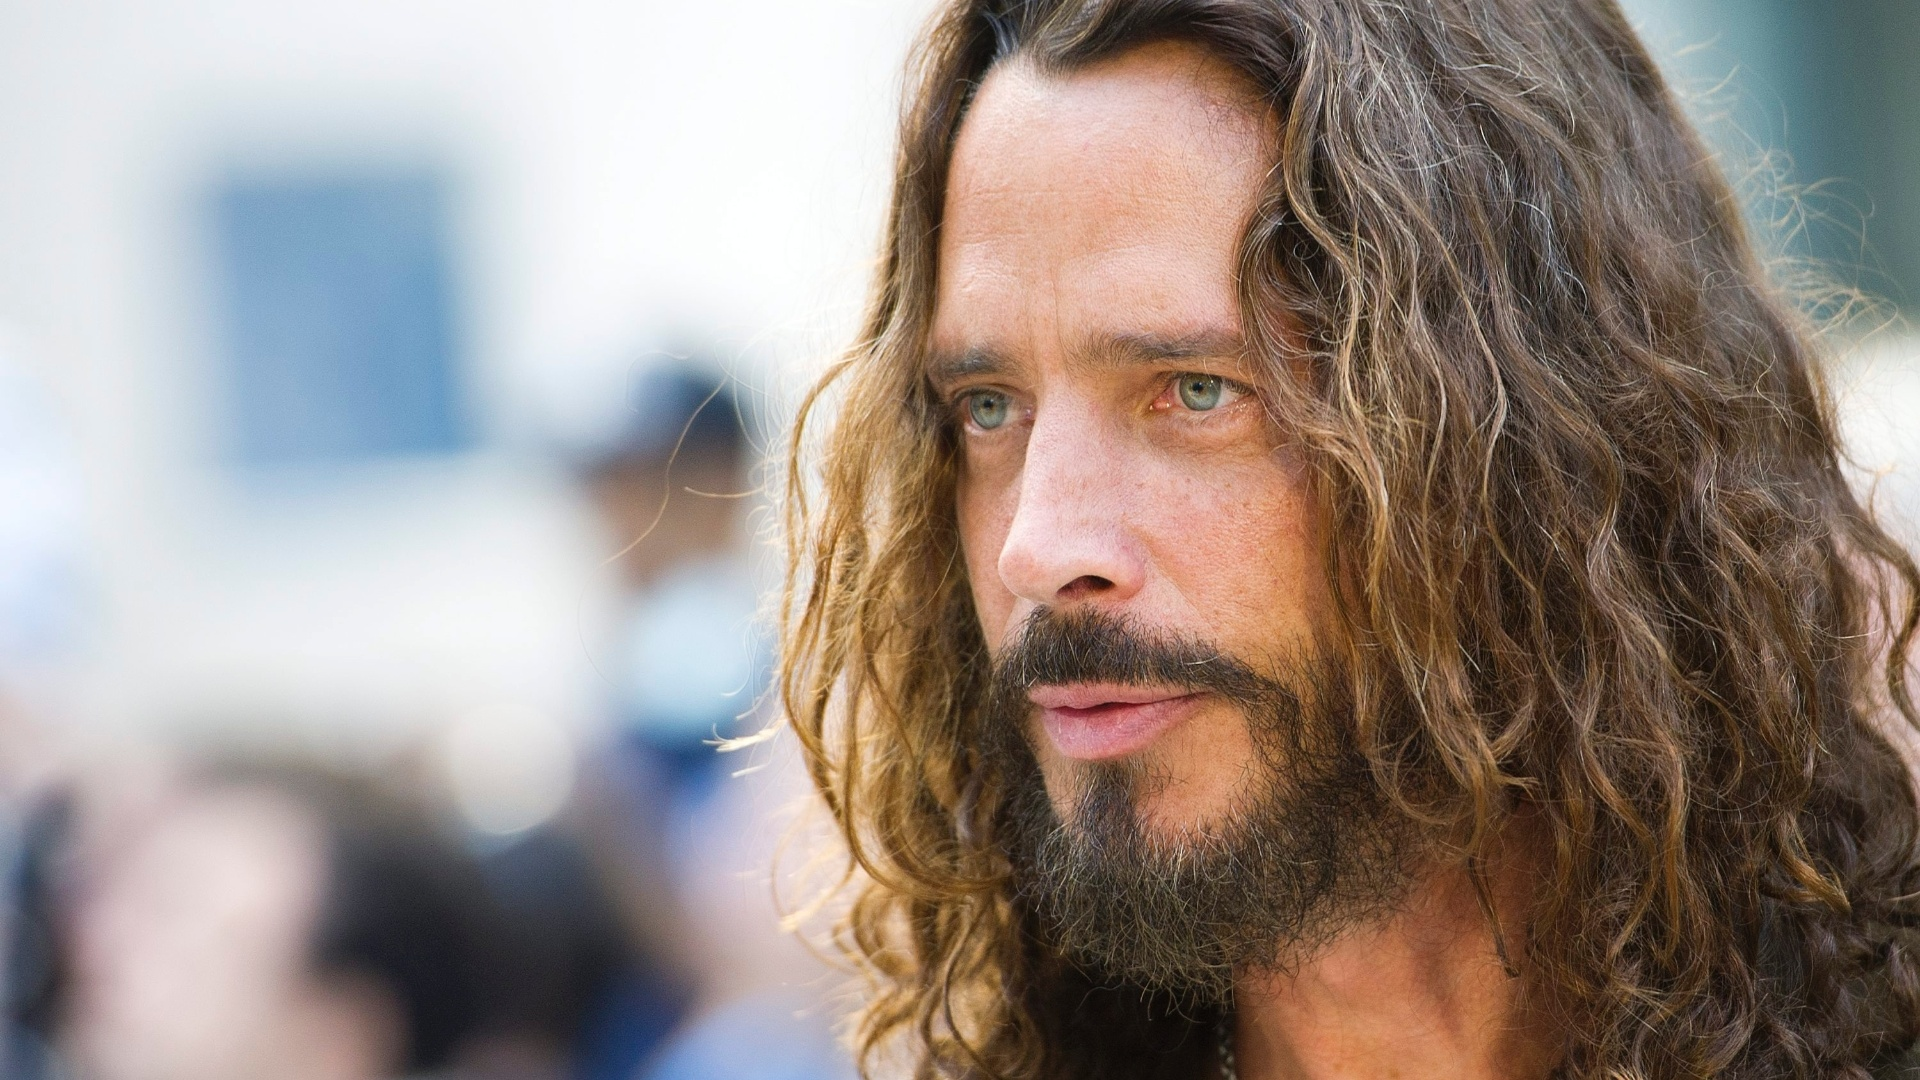 Chris-Cornell's-Singing-Nothing-Compares-To-U